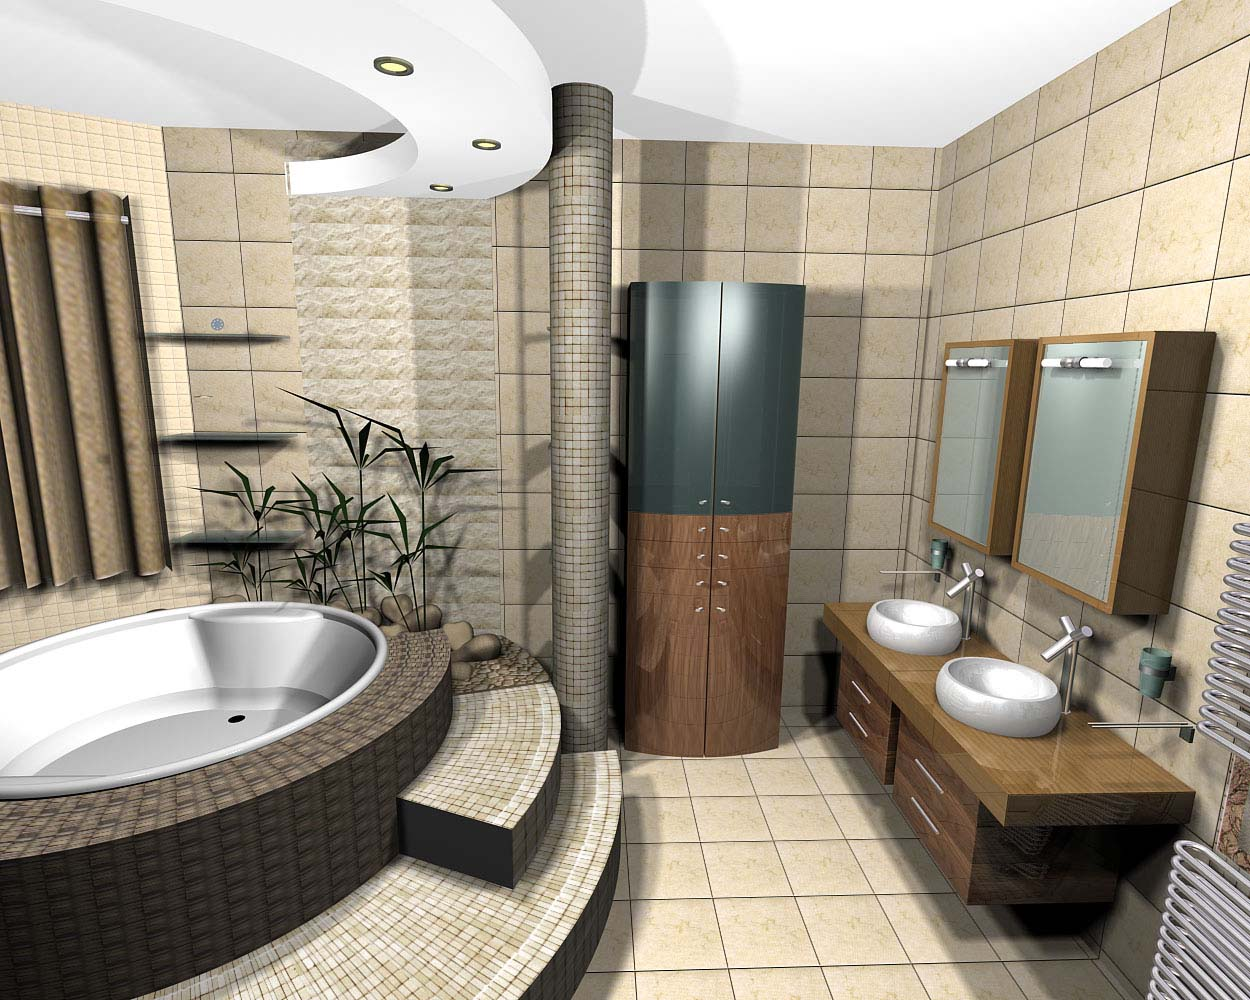 Enjoyable Bathroom How To Design Bathroom Small Bathroom Design Design Largest Home Design Picture Inspirations Pitcheantrous